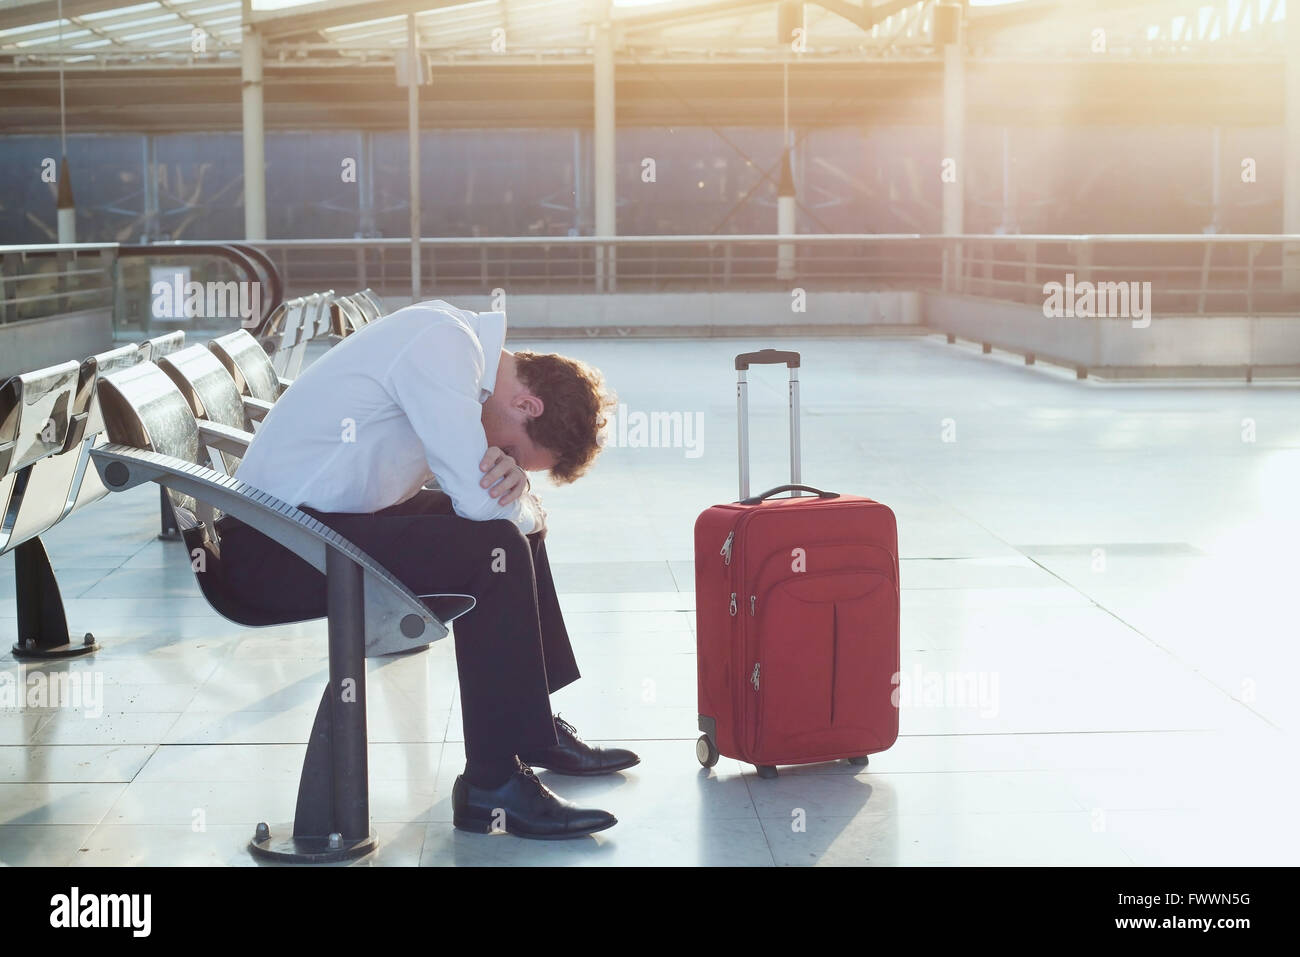 problem with transportation, delay of flight, depressed commuter with his luggage - Stock Image